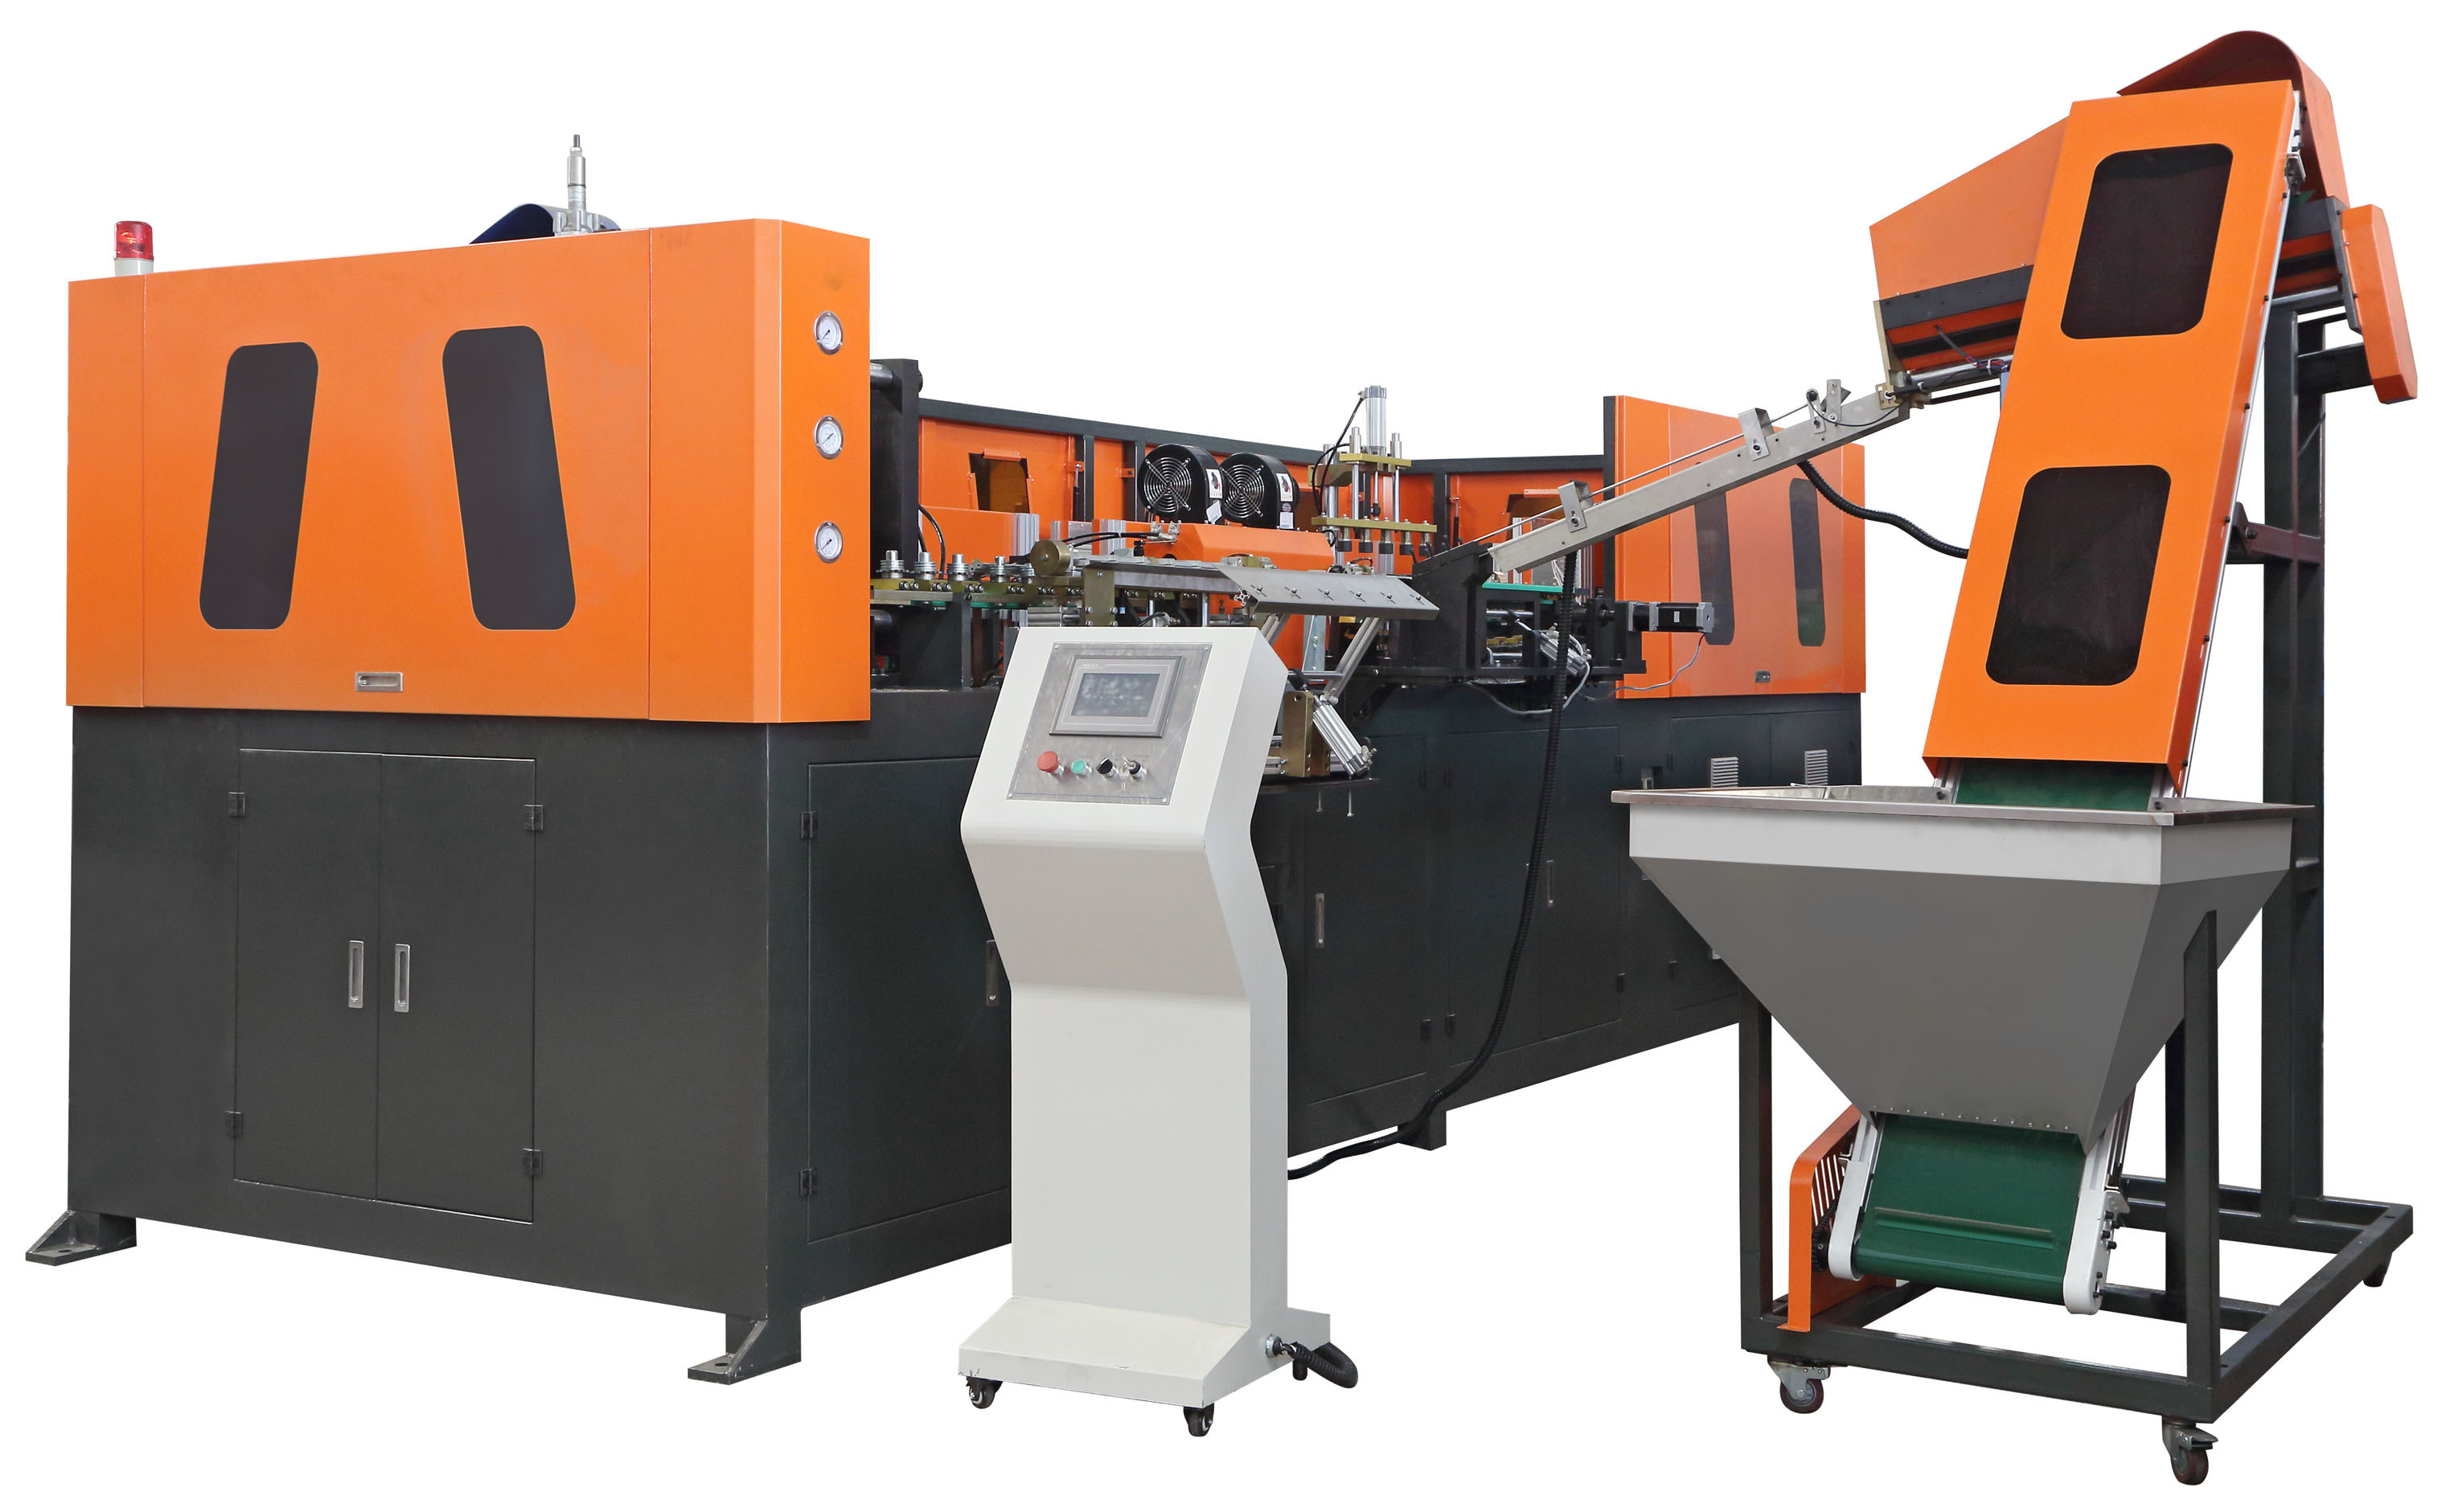 6 Cavity Water Bottle Manufacturing Machine,Hdpe Bottle Manufacturing Machine